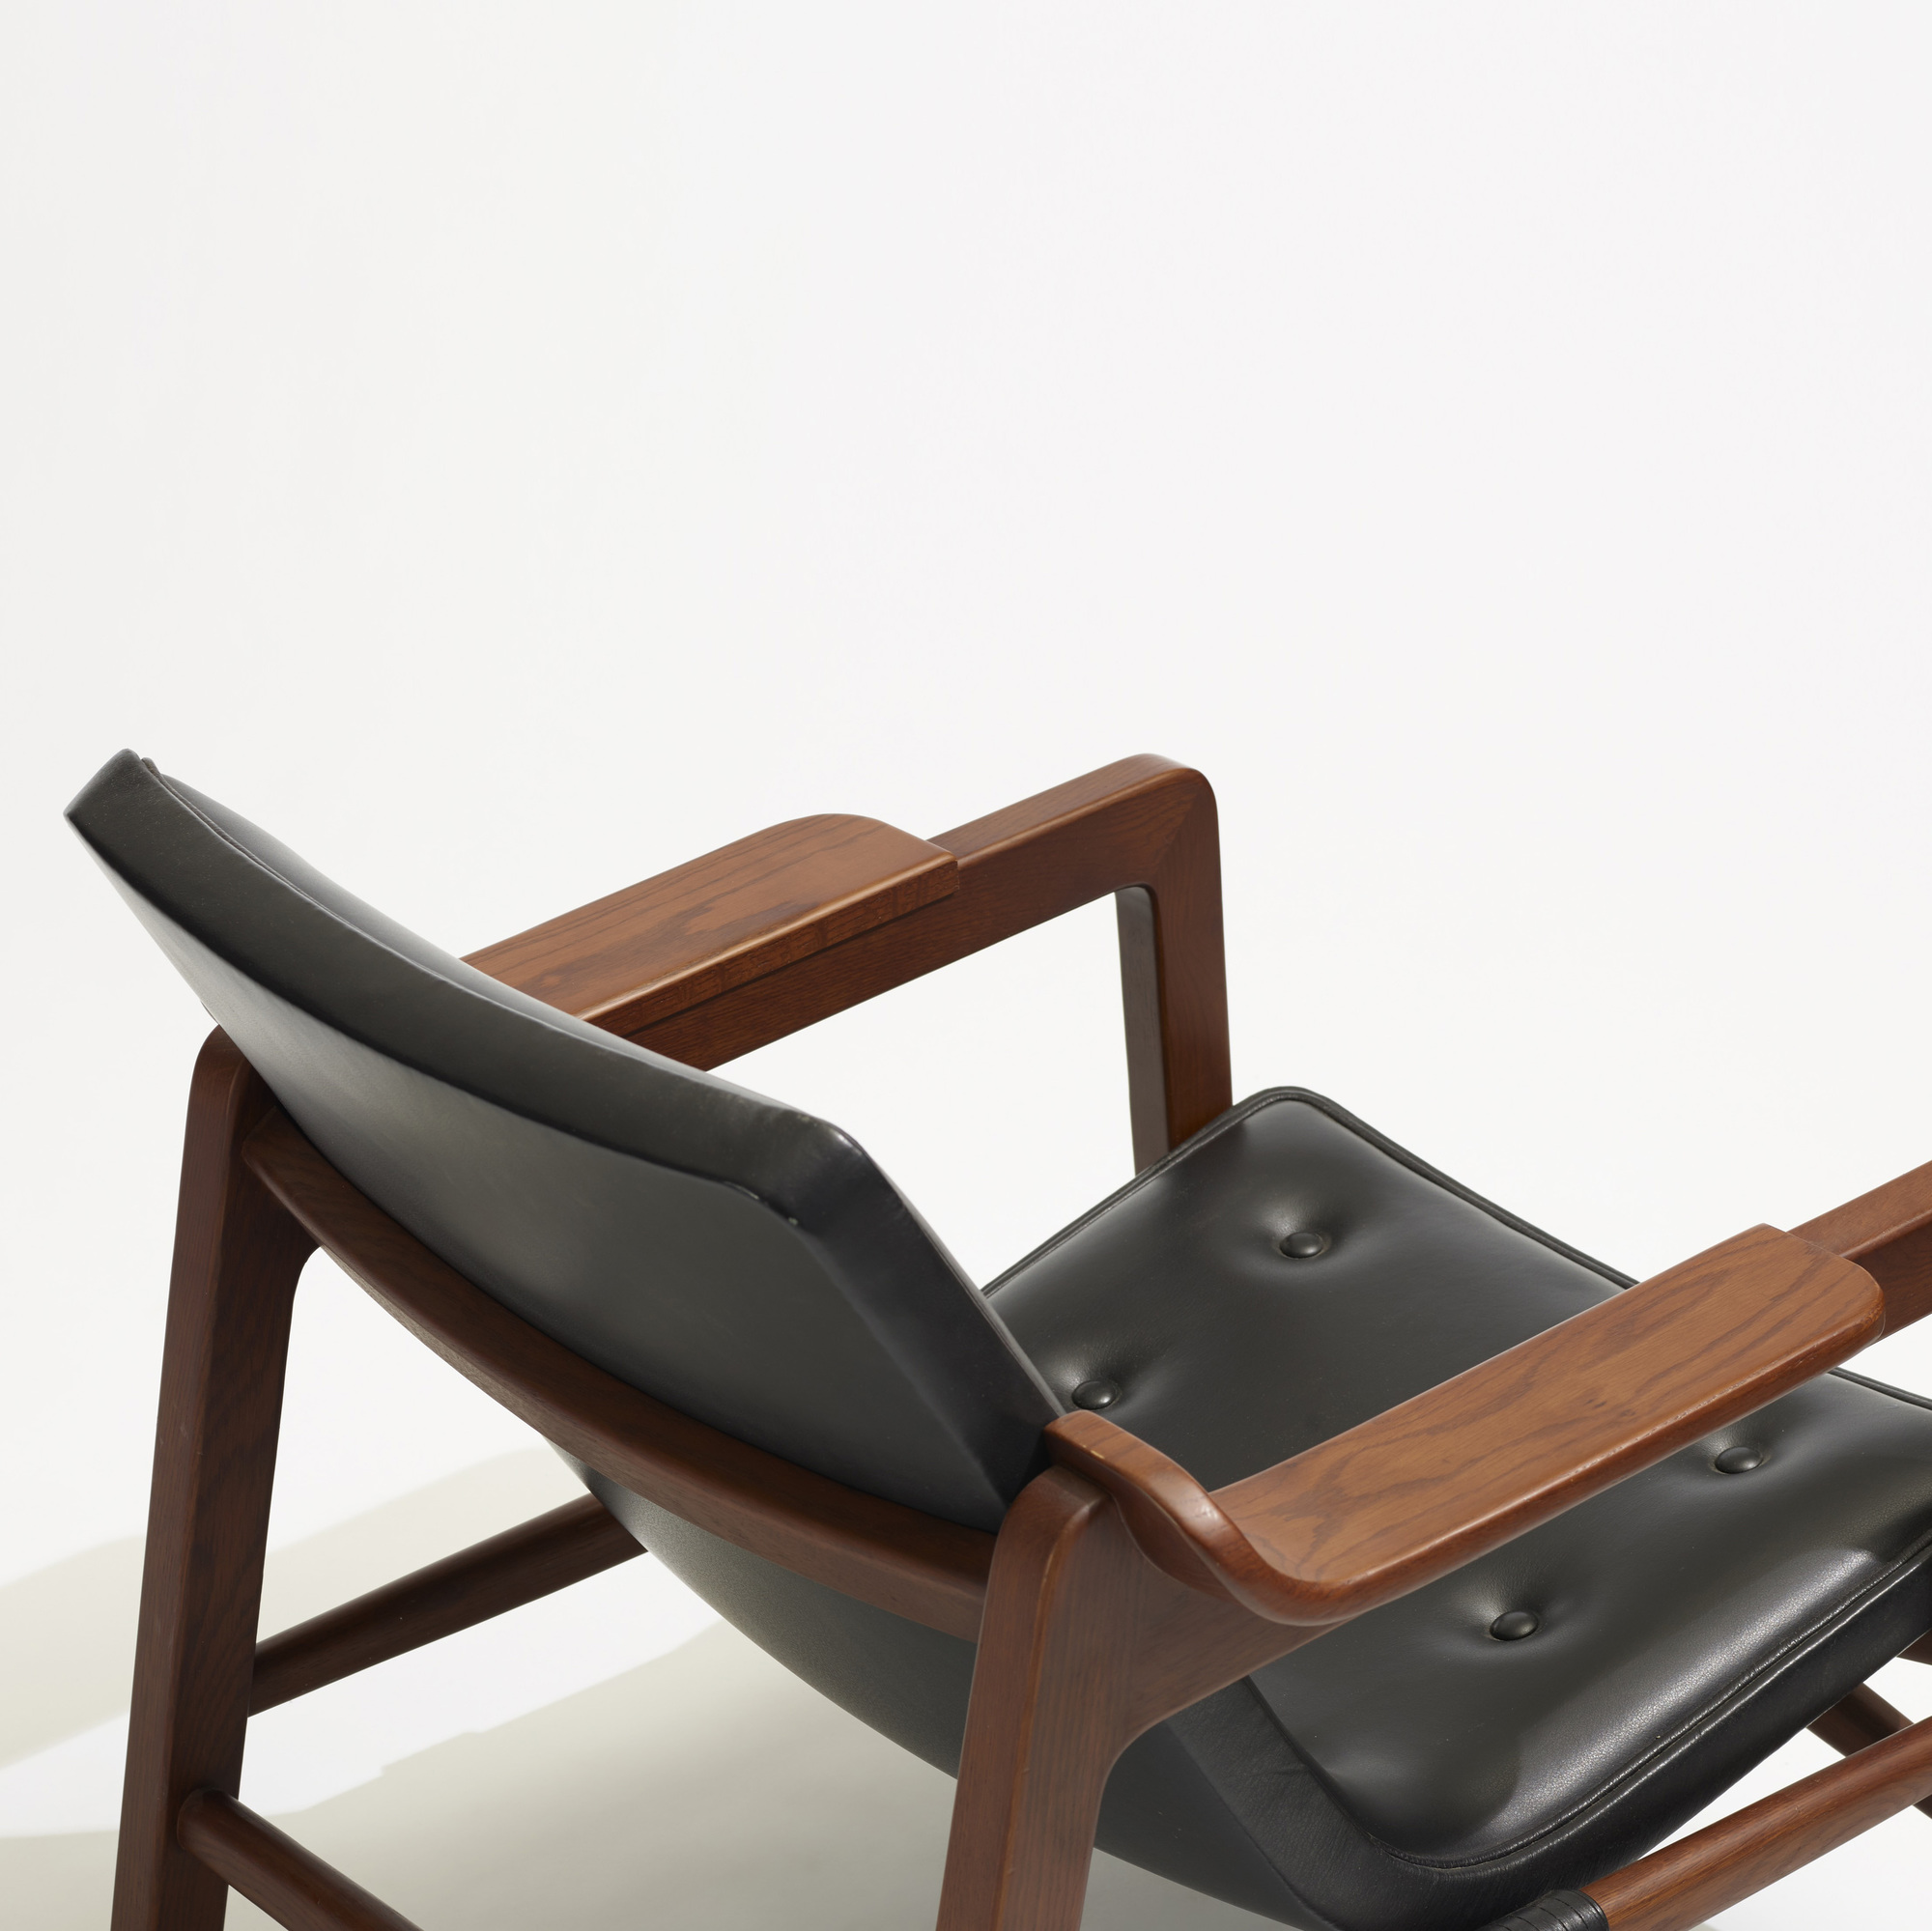 127: Edvard and Tove Kindt-Larsen / lounge chair (4 of 4)